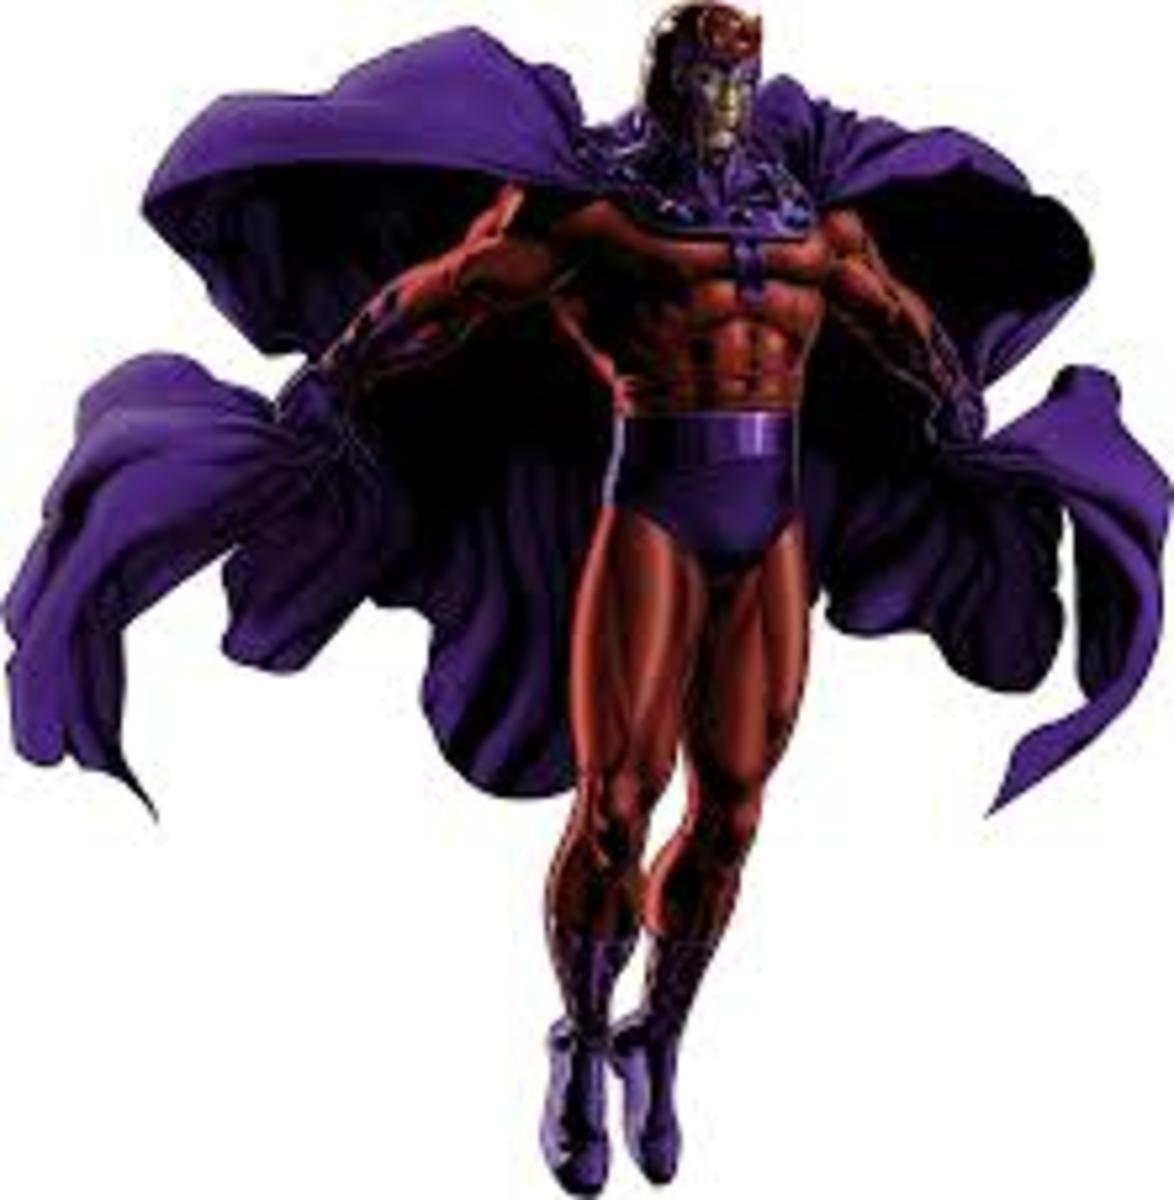 Magneto is the true definitive X-Men bad guy.